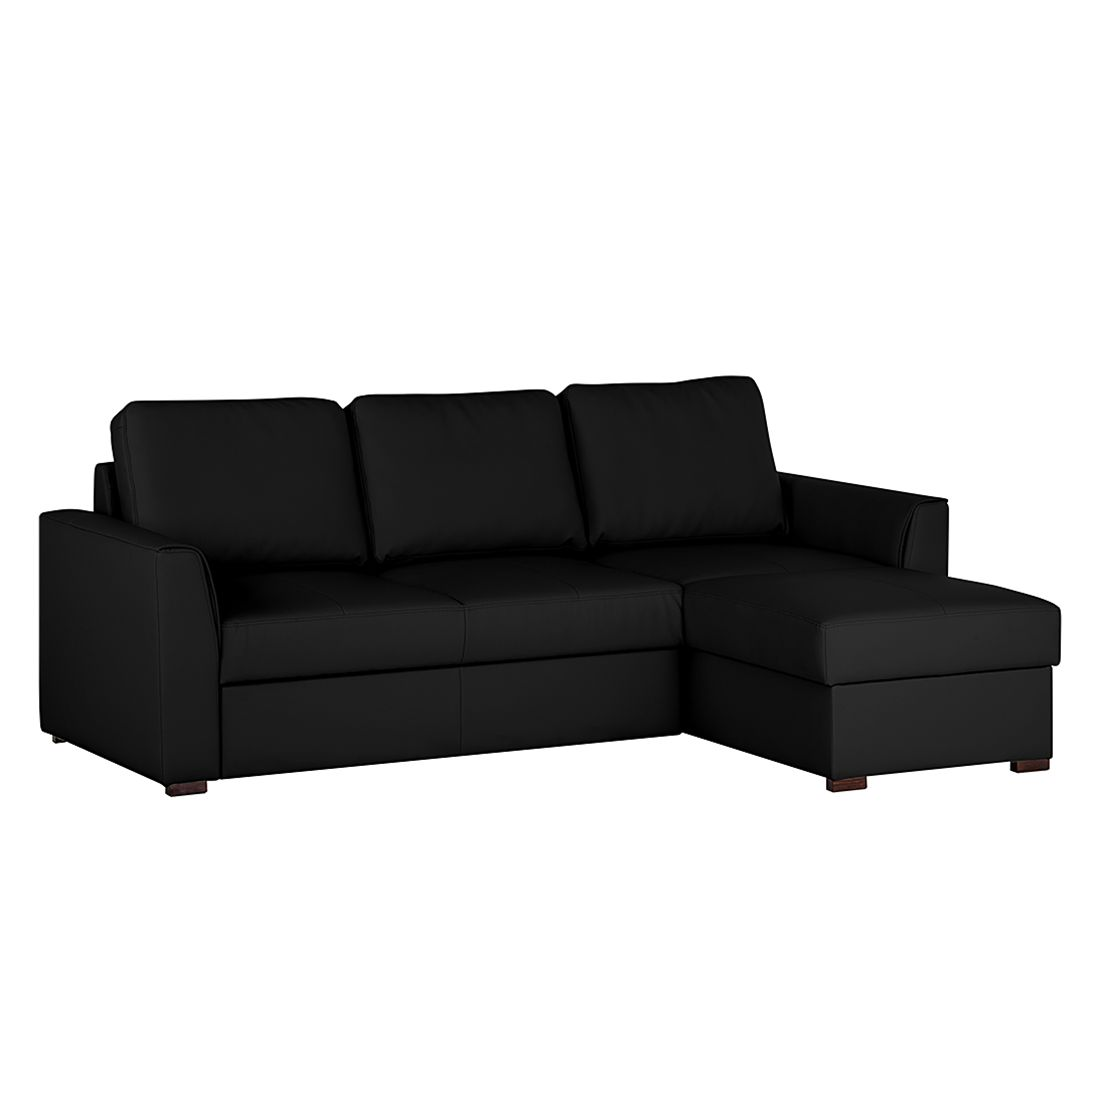 ecksofa venezia. Black Bedroom Furniture Sets. Home Design Ideas